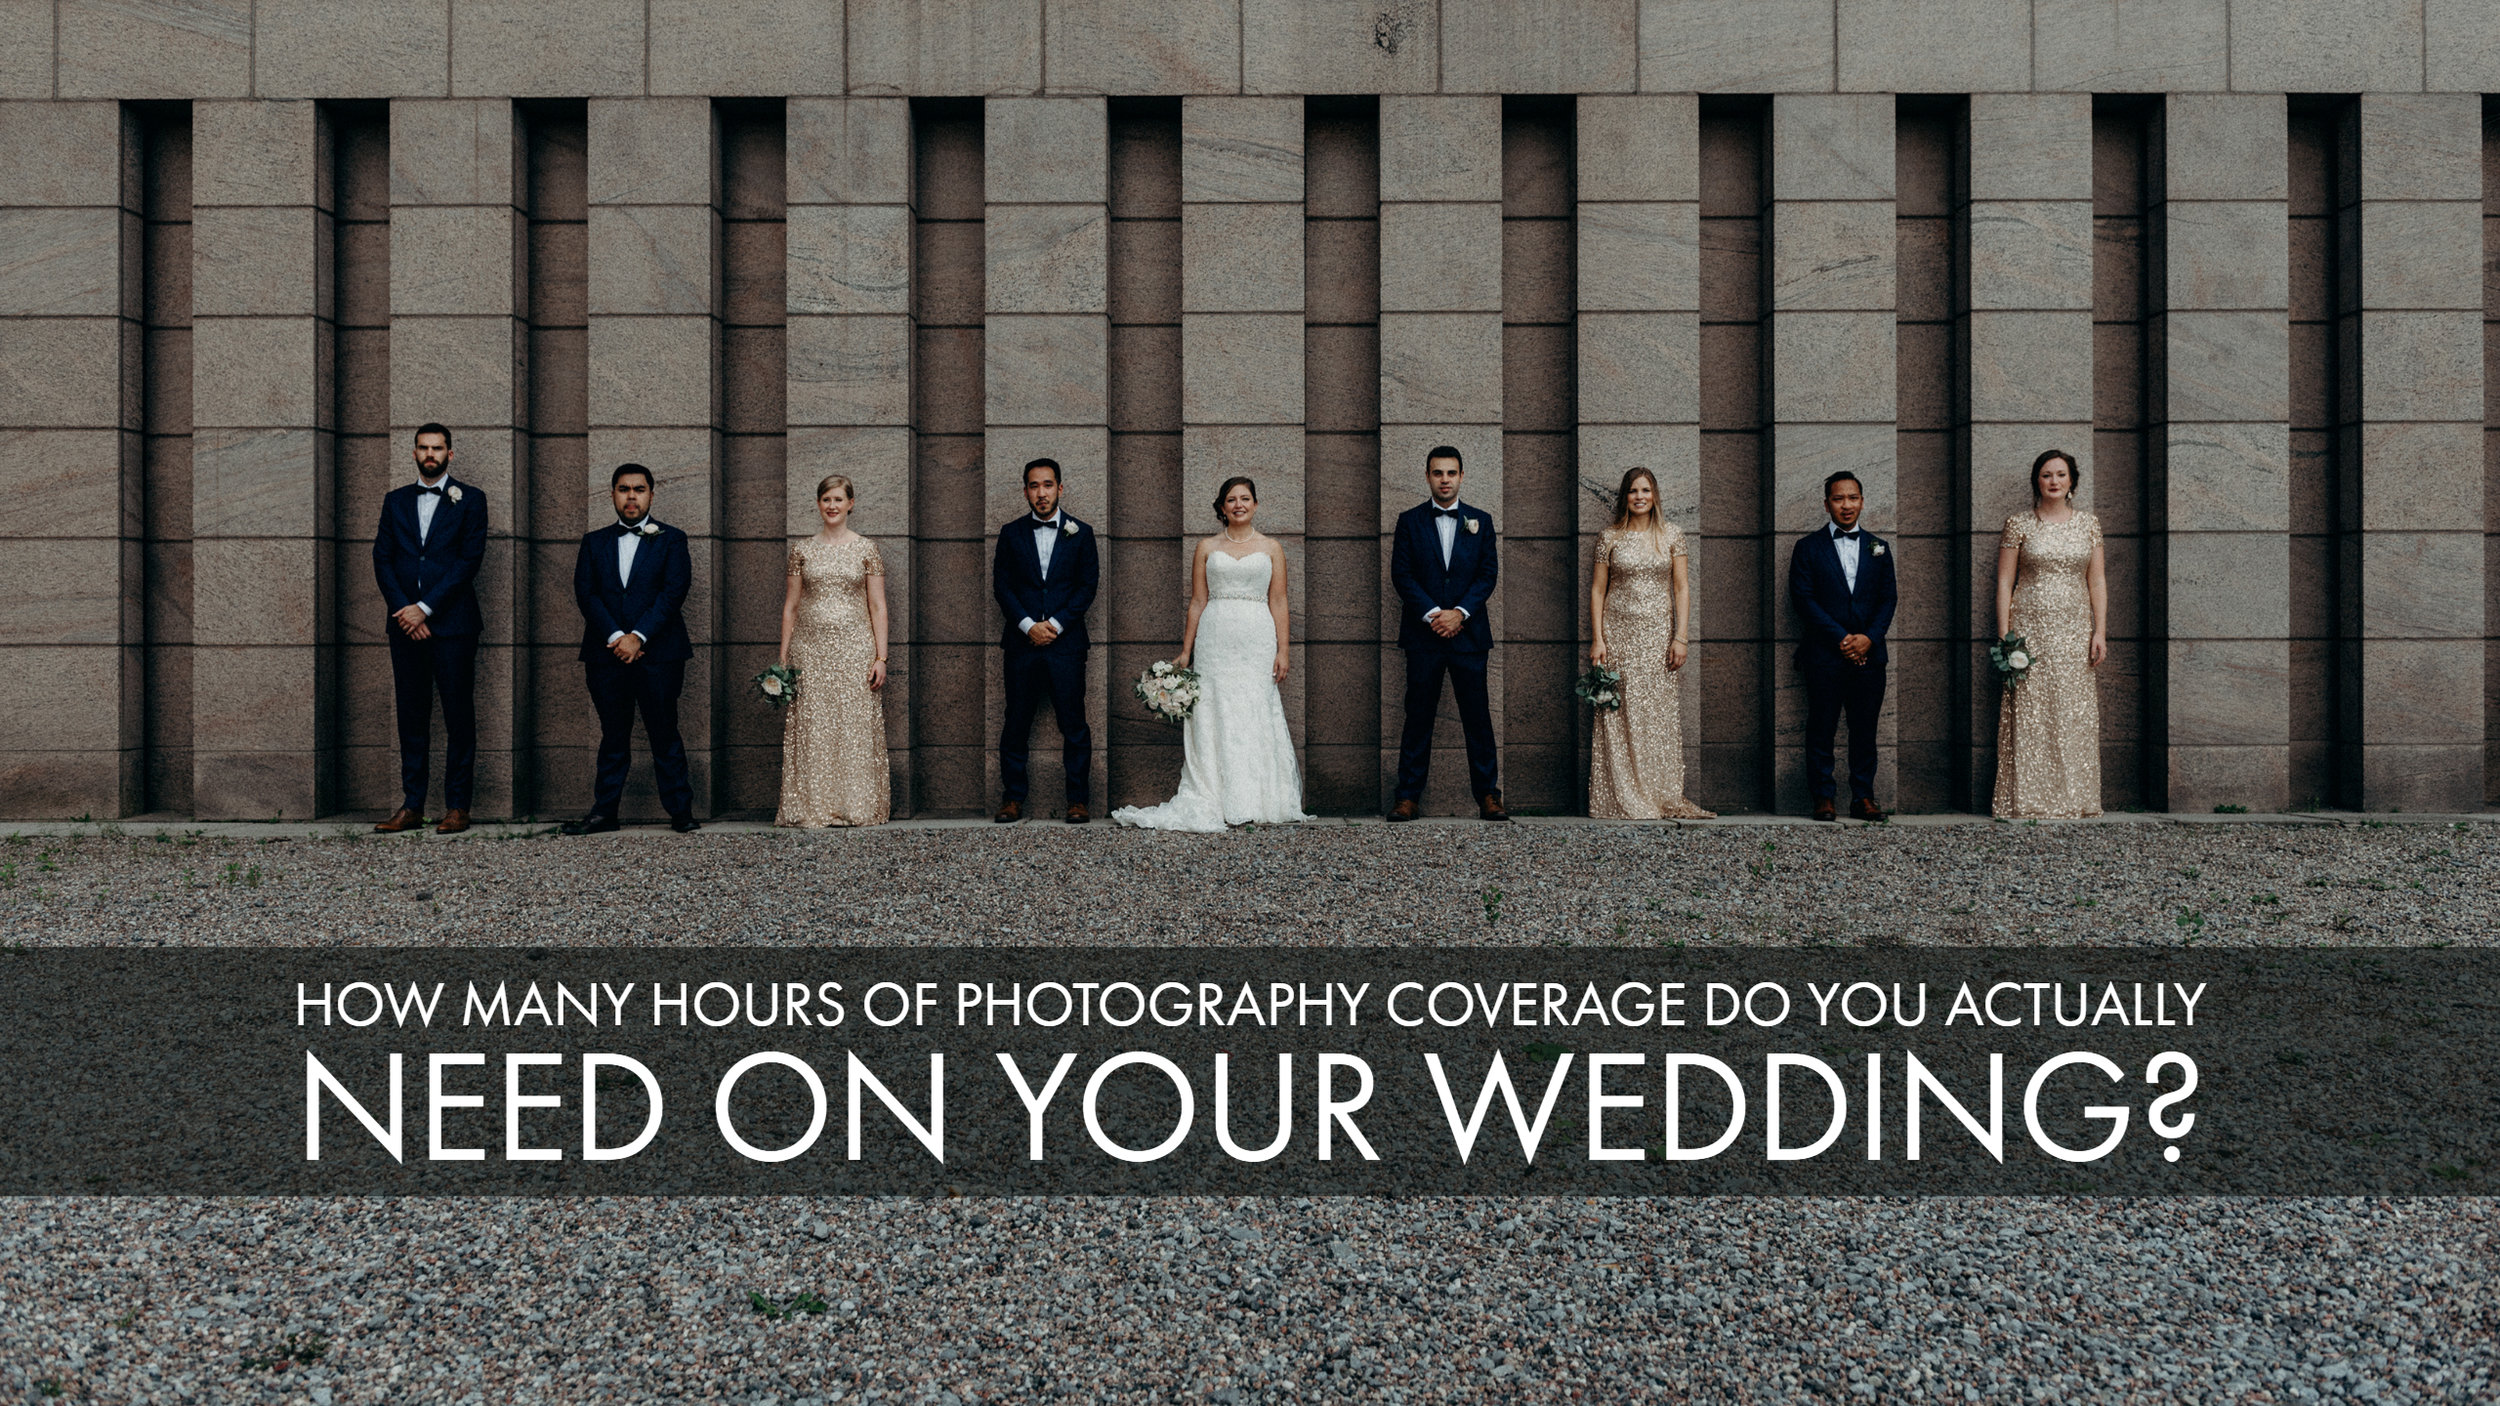 How many hours of photography coverage do you actually need?